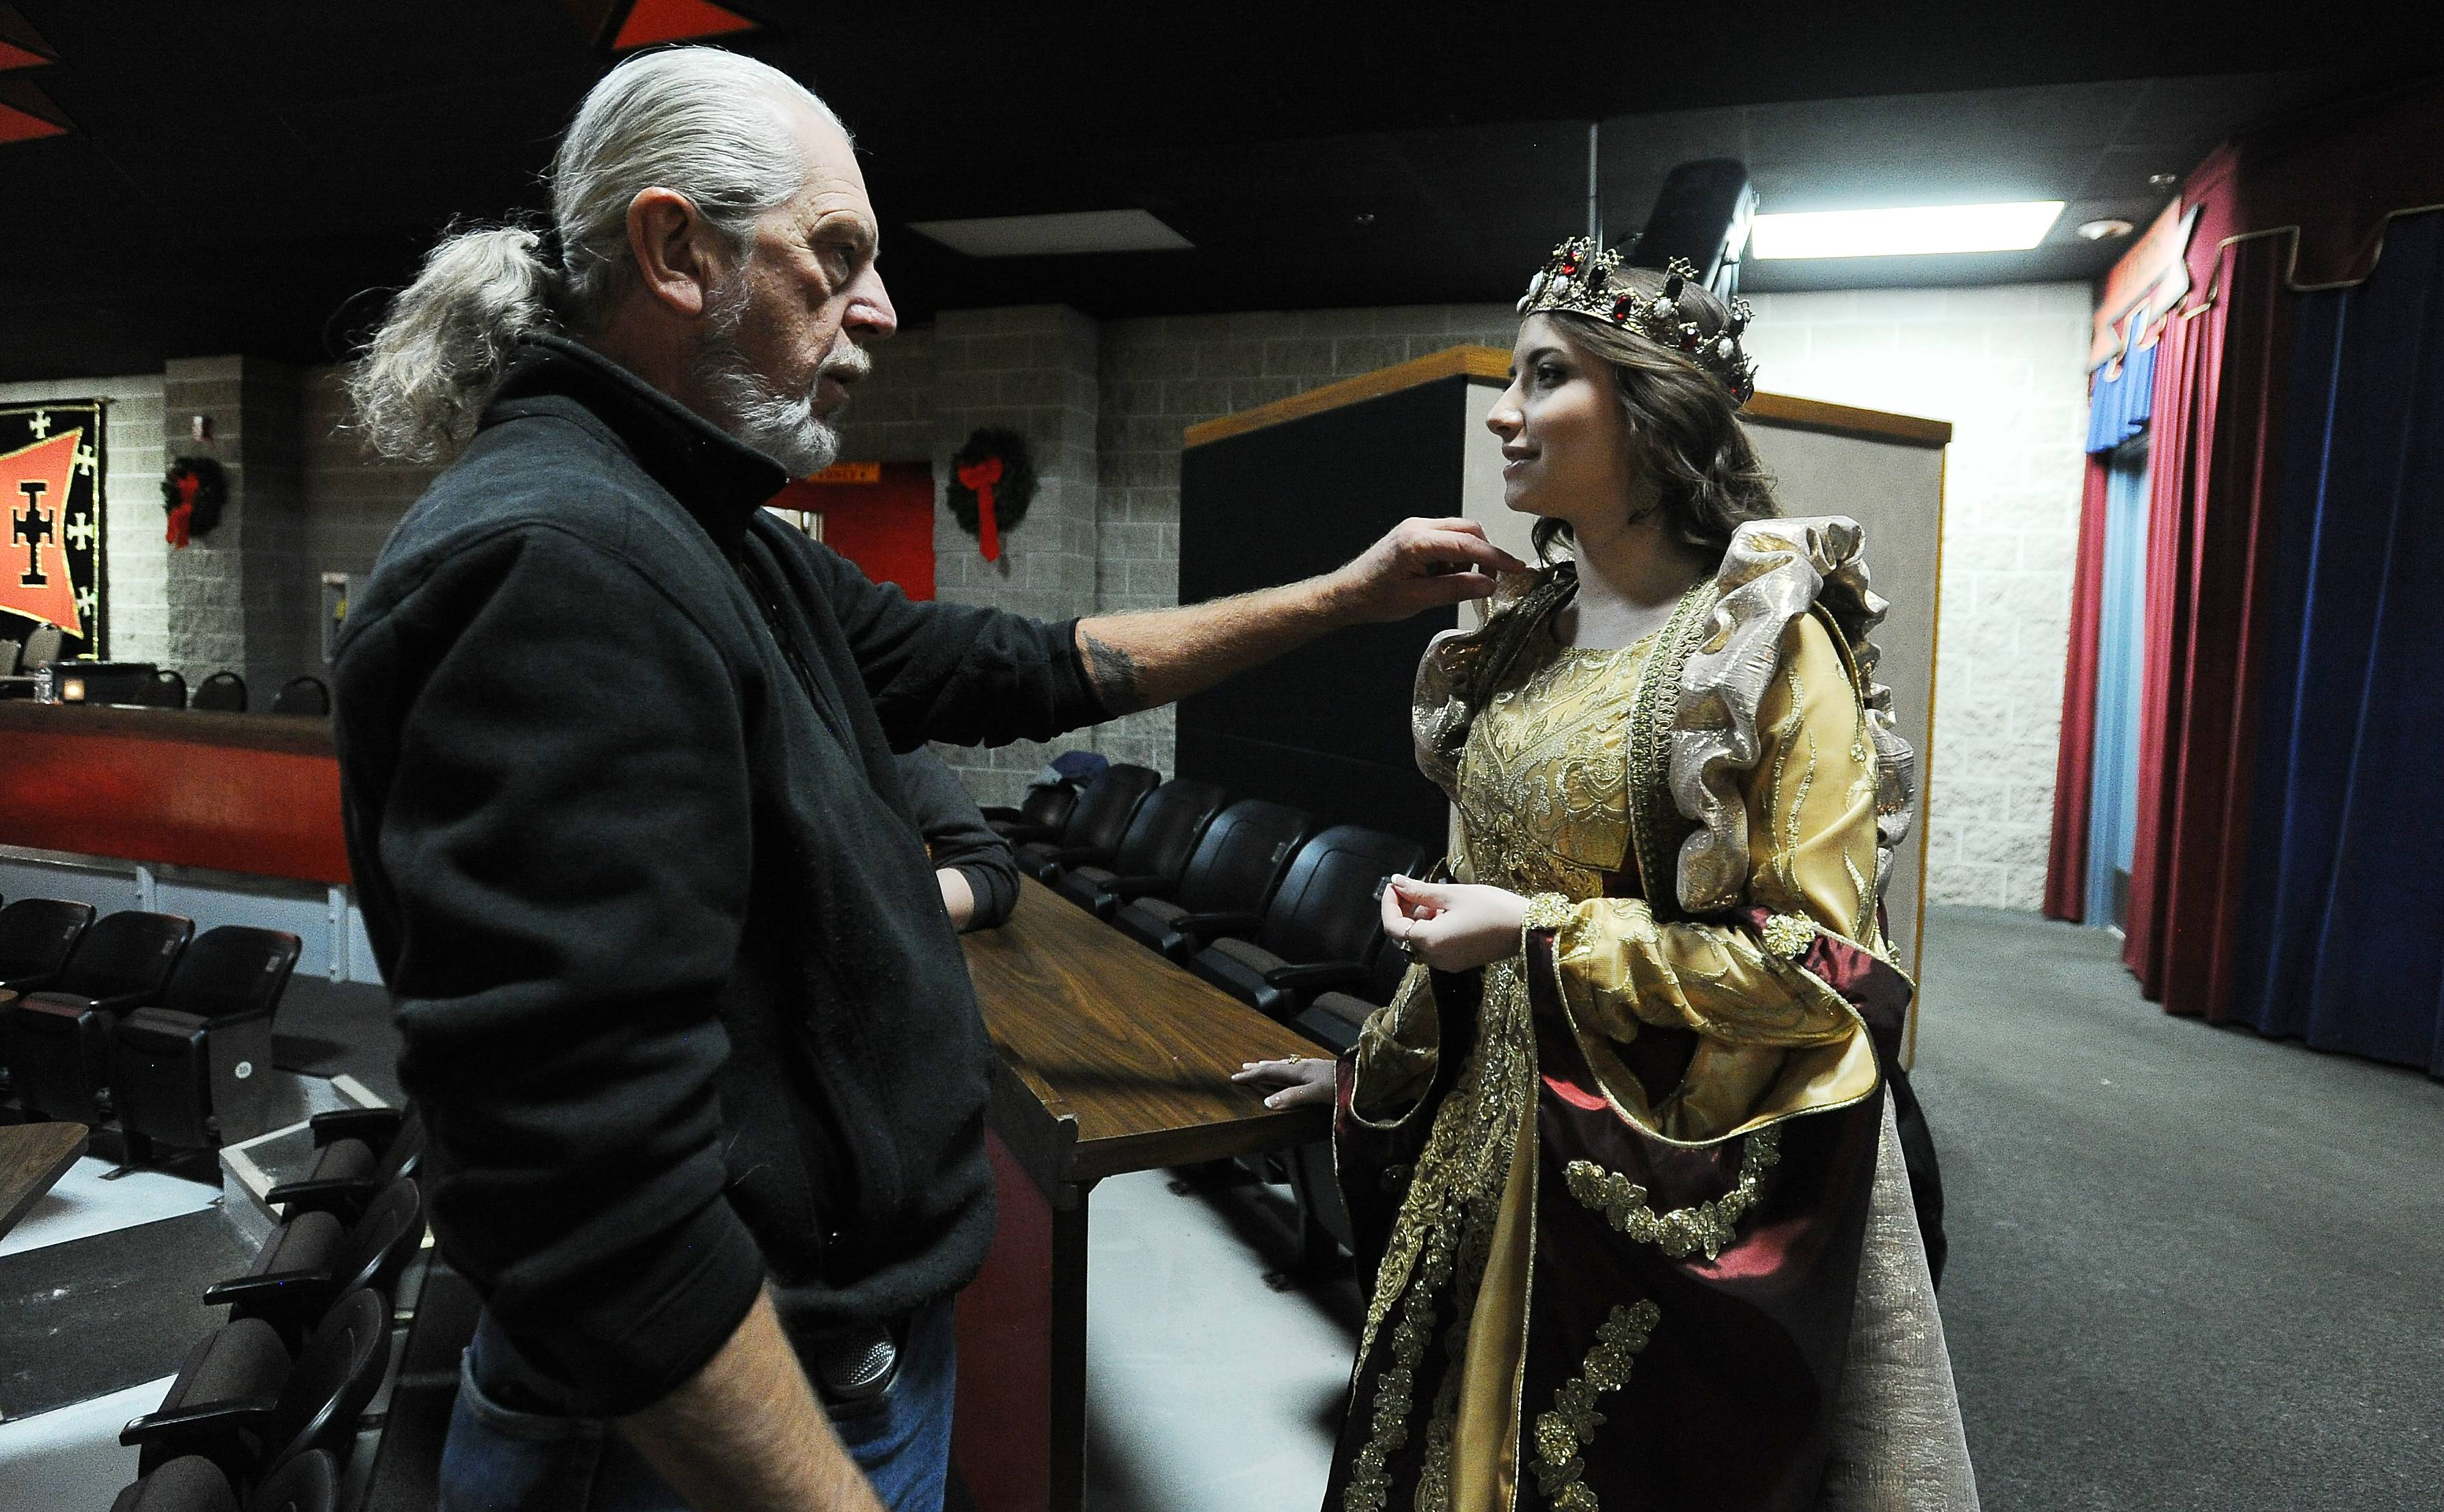 Director of show Leigh Cordner talks with Sara Schubring, one of the women sharing the role of ruling queen at Schaumburg's Medieval Times.